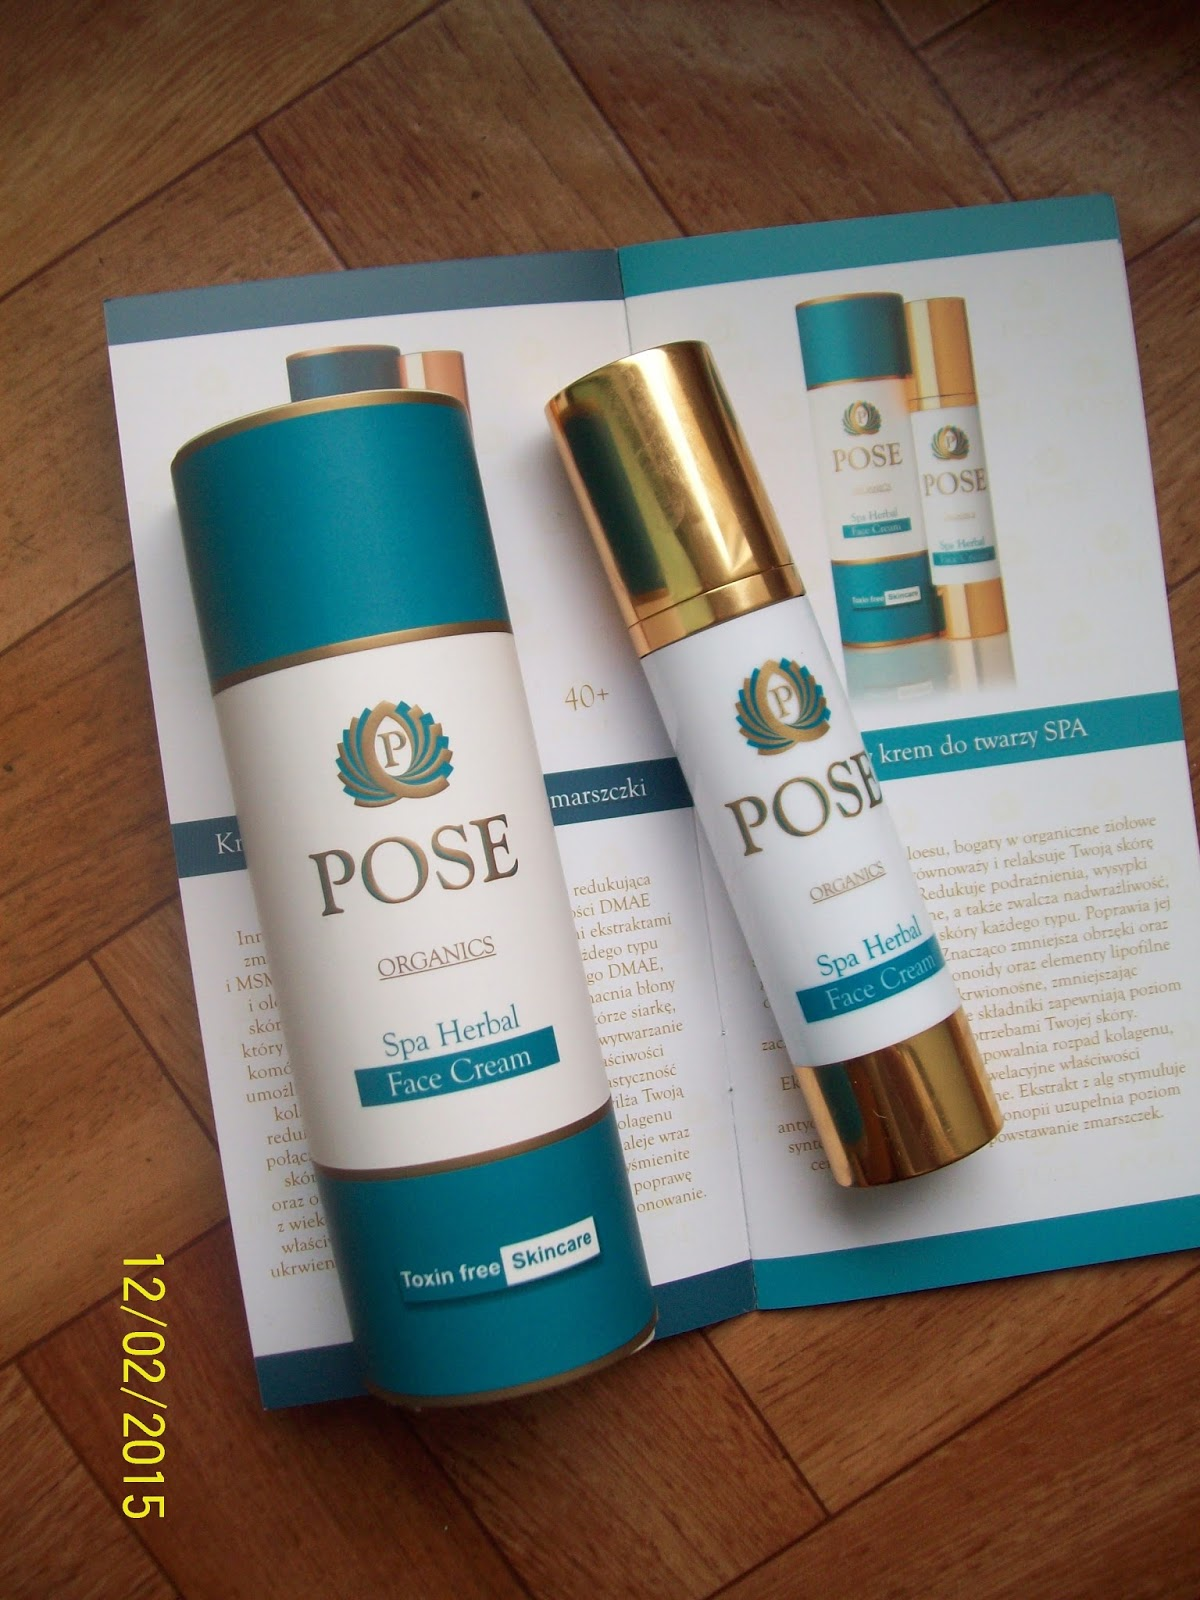 Pose Spa Herbal krem do twarzy